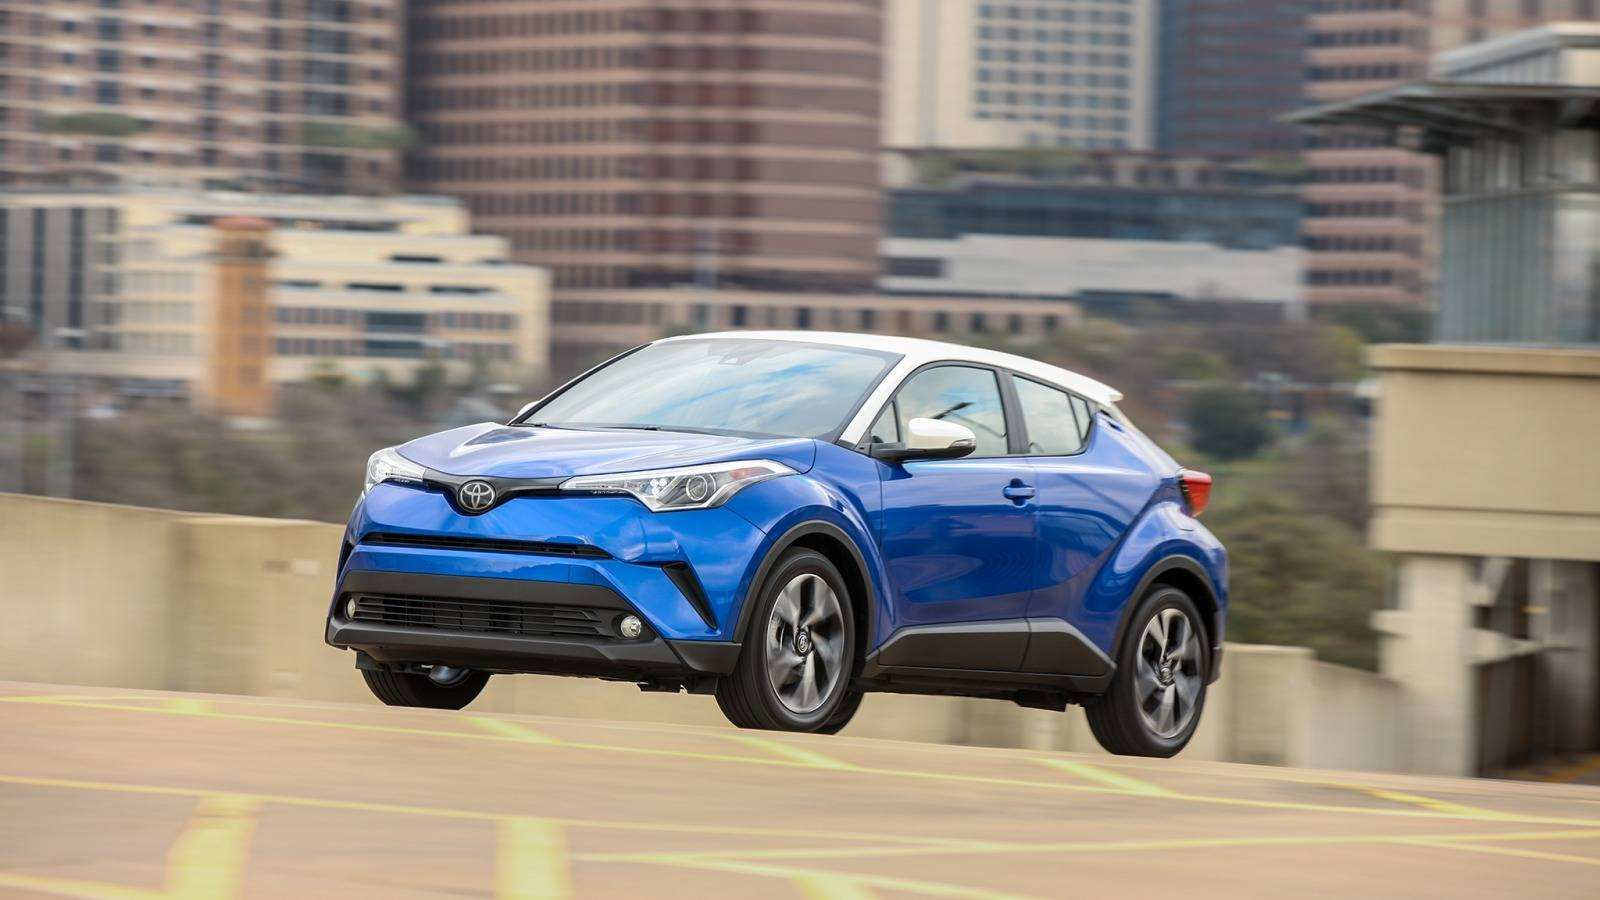 64 New 2019 Toyota C Hr Compact Exterior